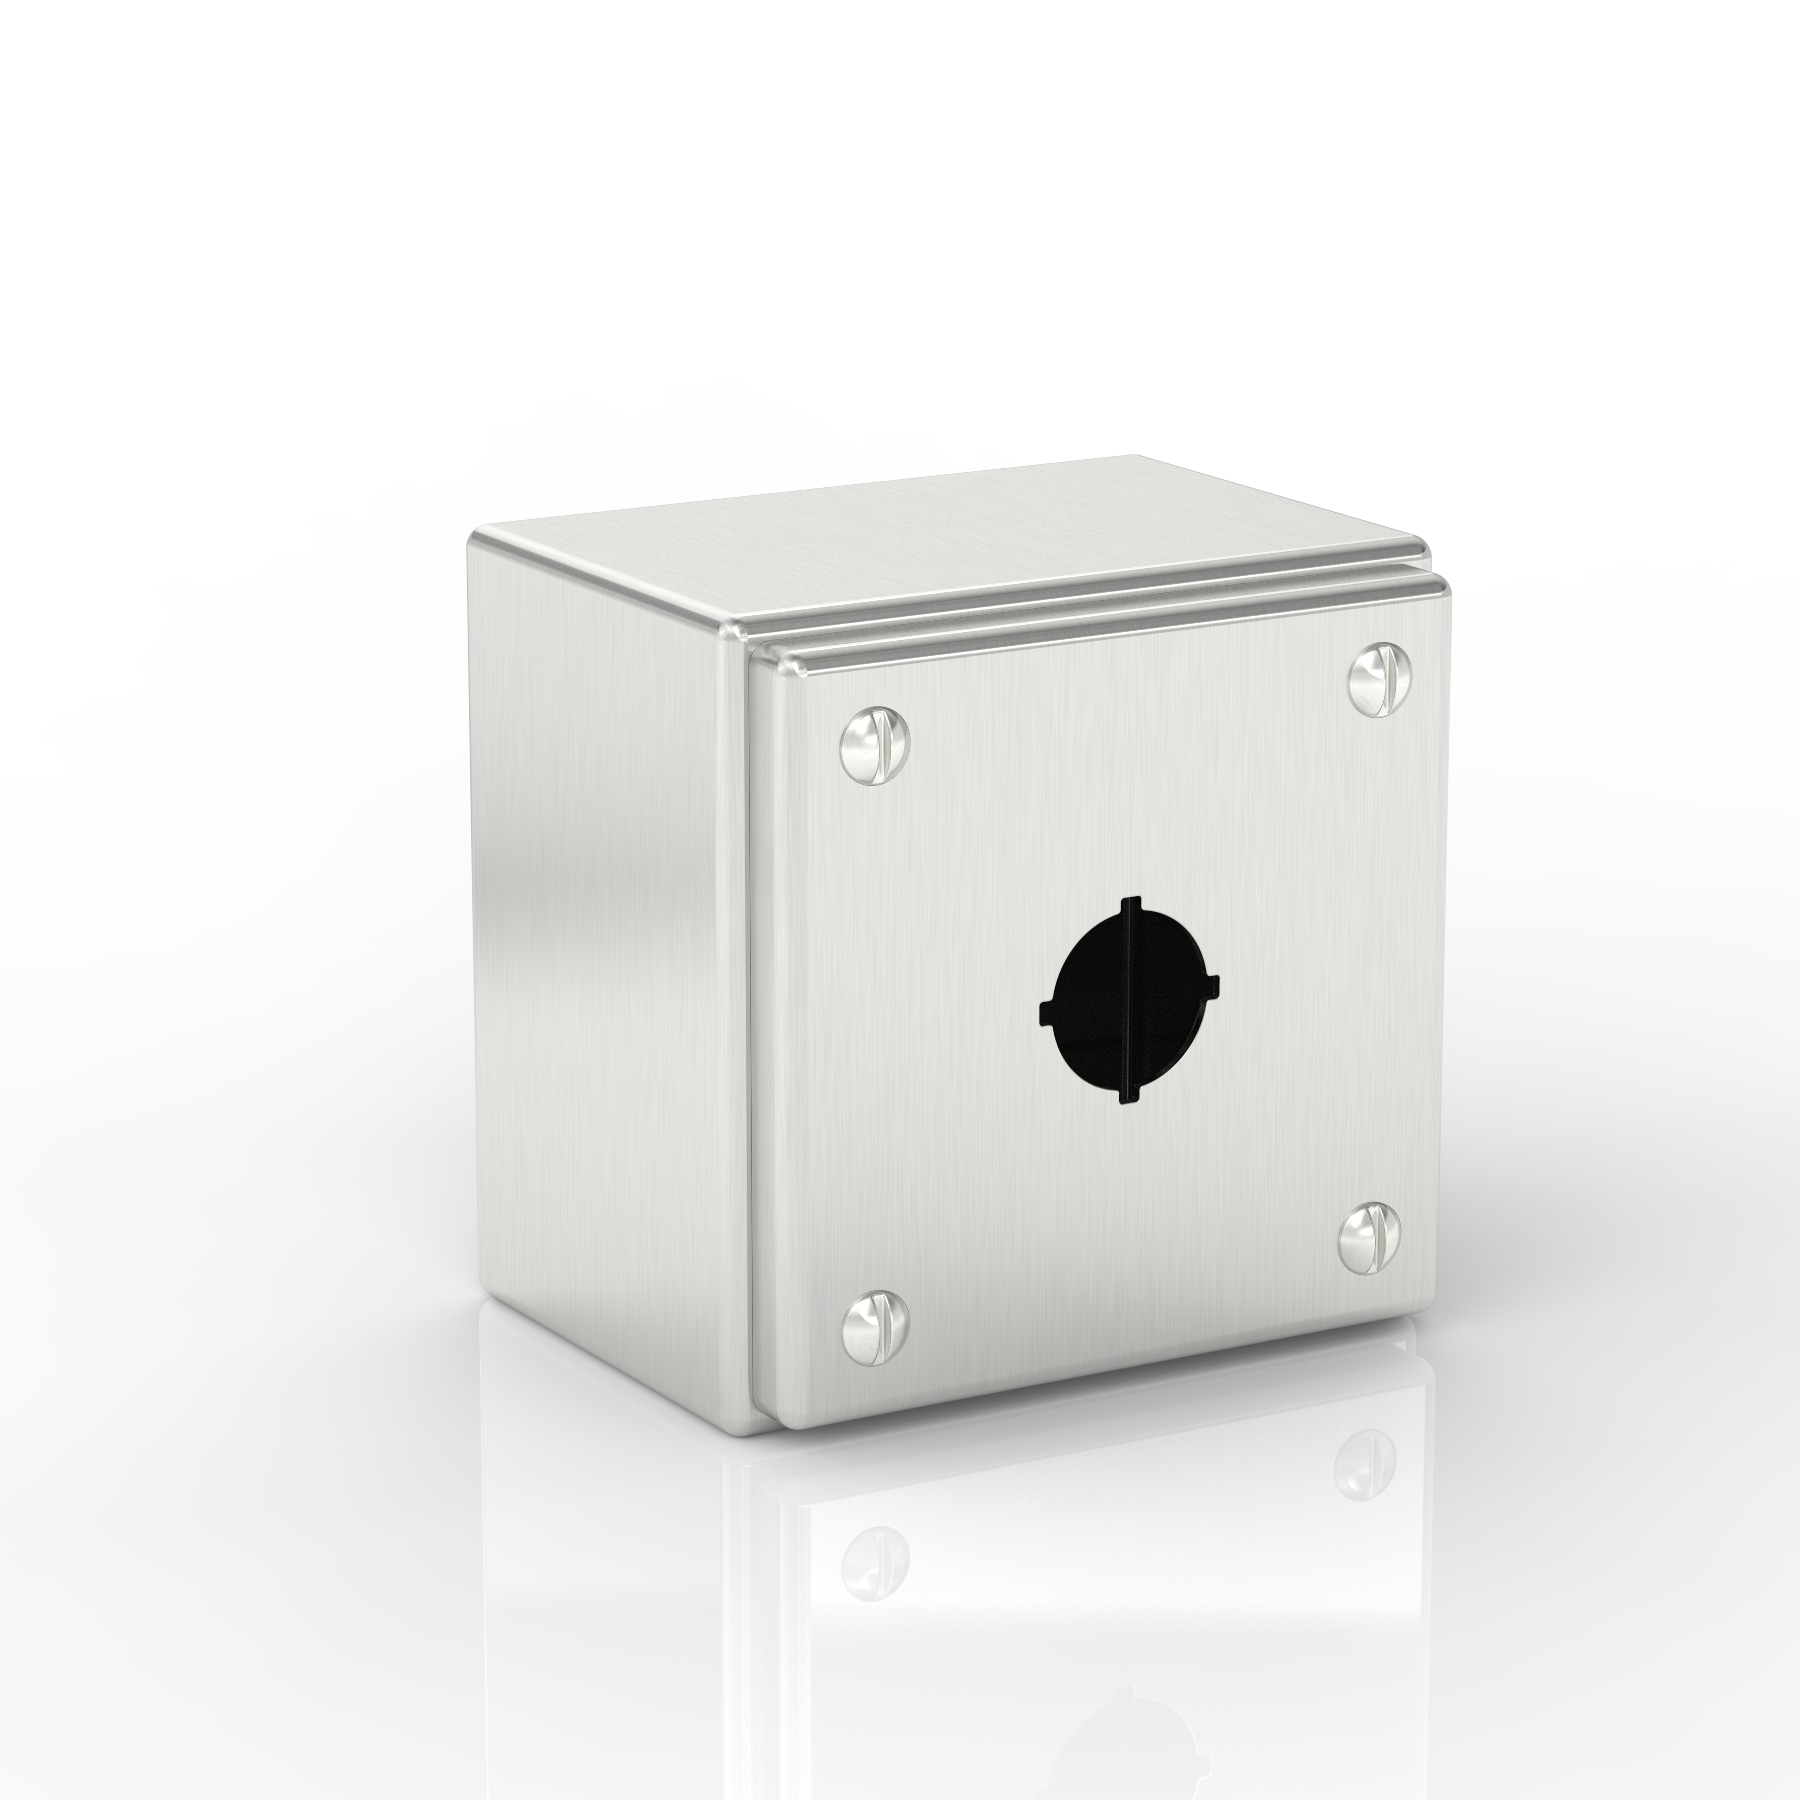 SL-XPB1-S316-22.5 | Slimline Push-Button Enclosure with Removable Stand-Off Mounting Pillars